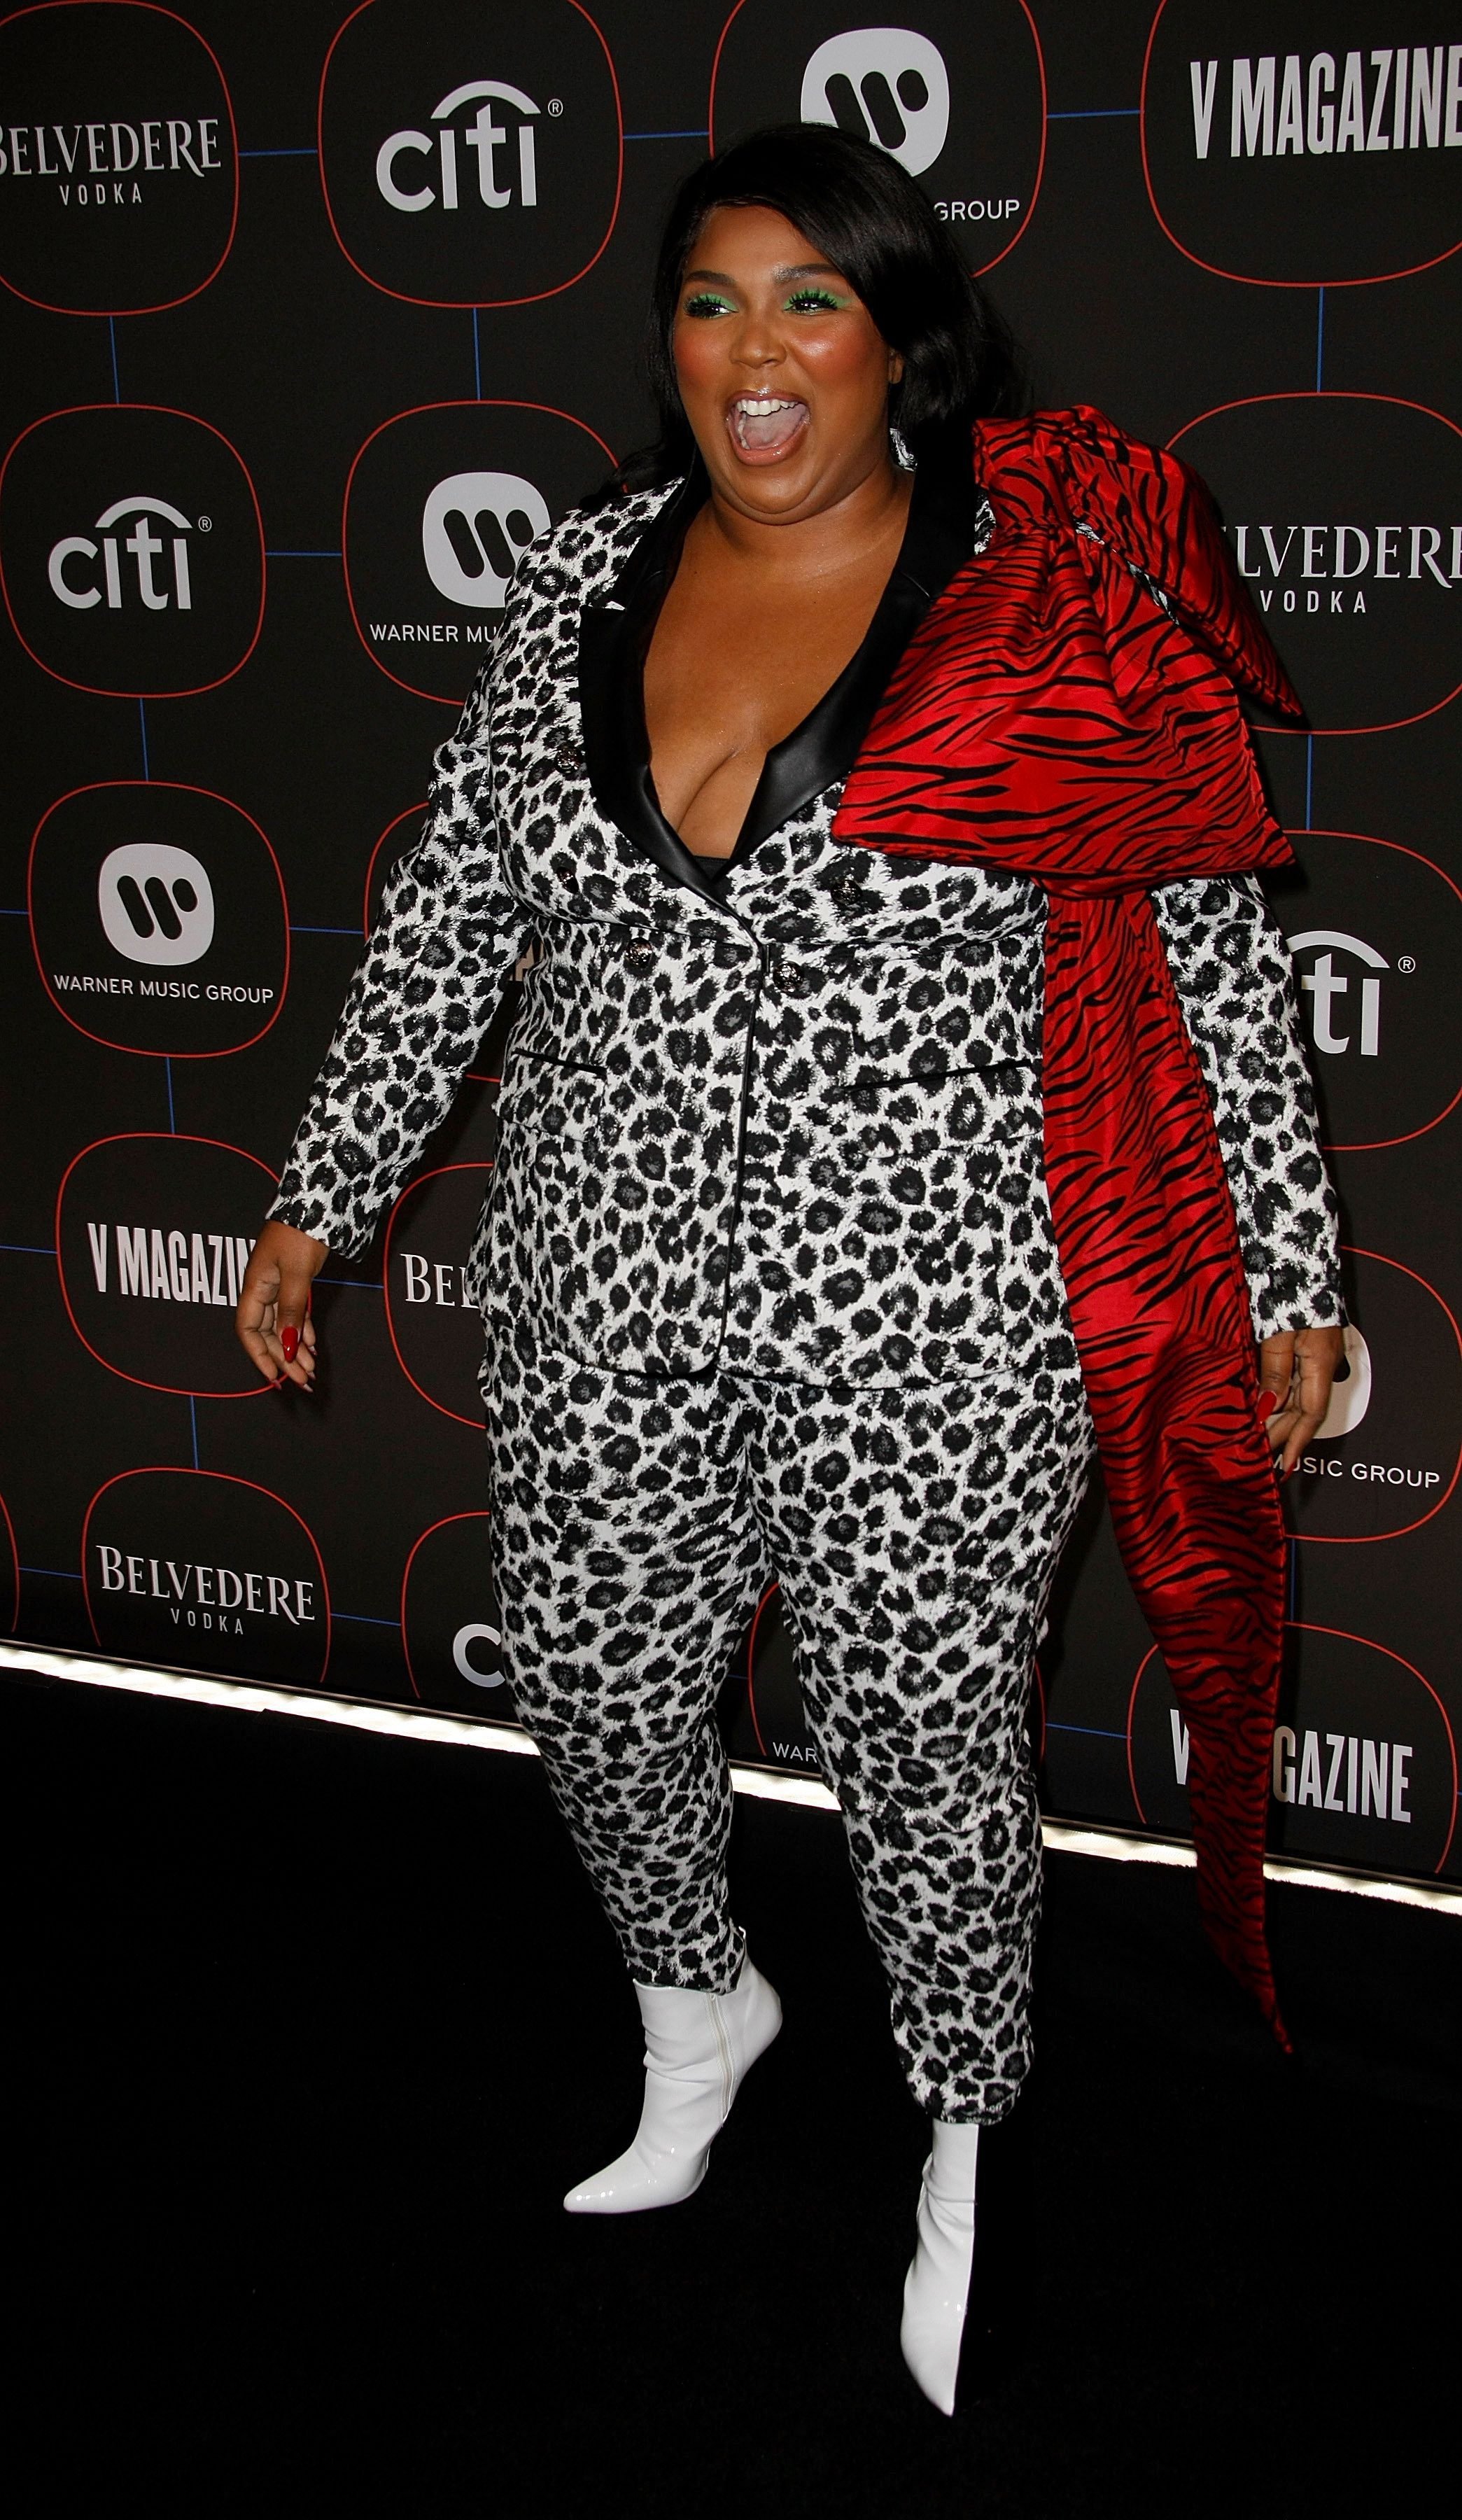 LOS ANGELES, CA - FEBRUARY 07: Lizzo attends the Warner Music Pre-Grammy Party at the NoMad Hotel on February 7, 2019 in Los Angeles, California. Photo: CraSH/imageSPACE/MediaPunch /IPX